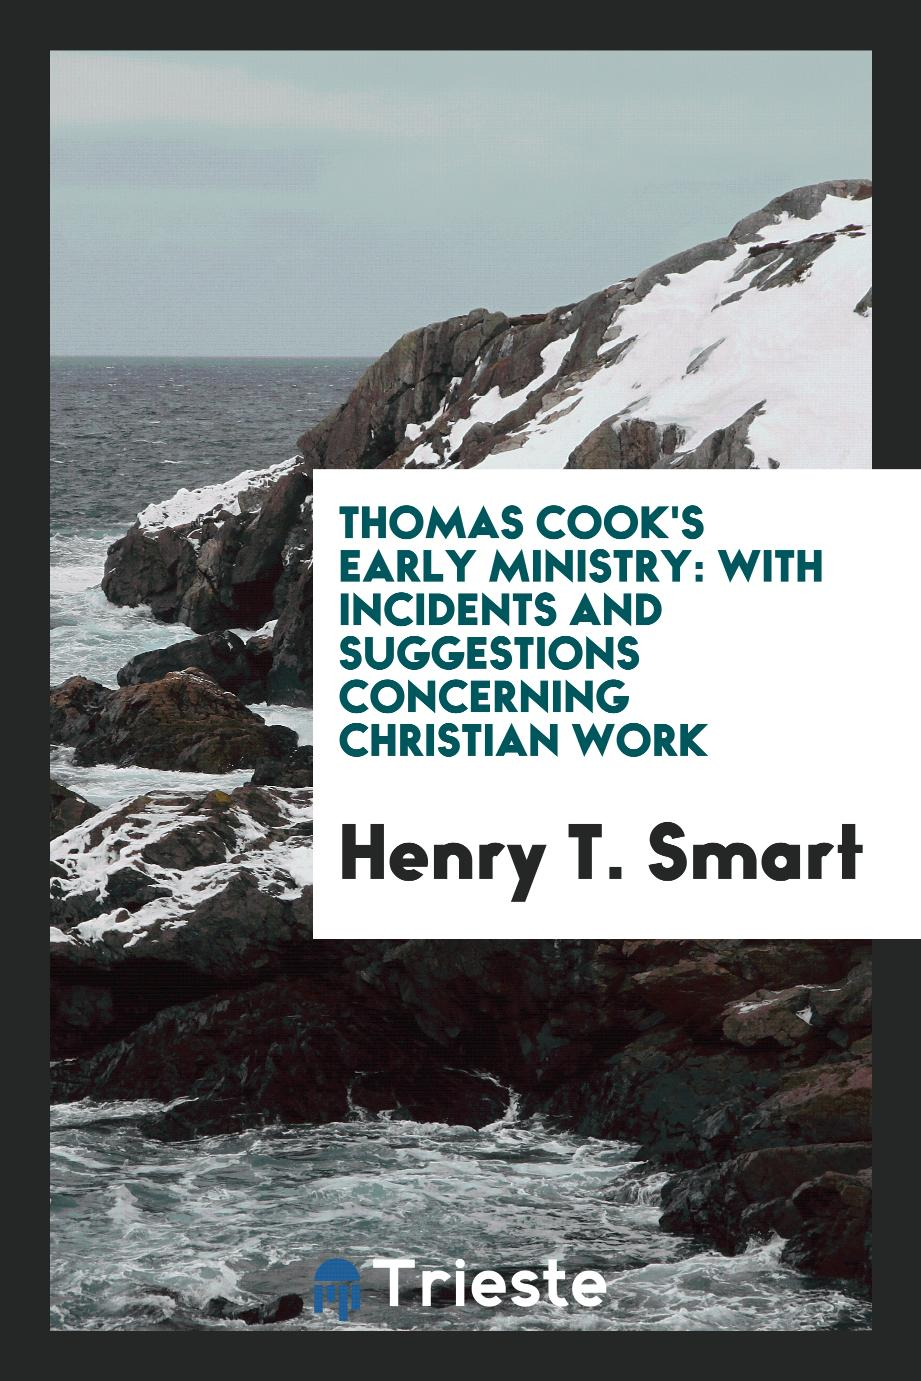 Thomas Cook's early ministry: with incidents and suggestions concerning Christian work